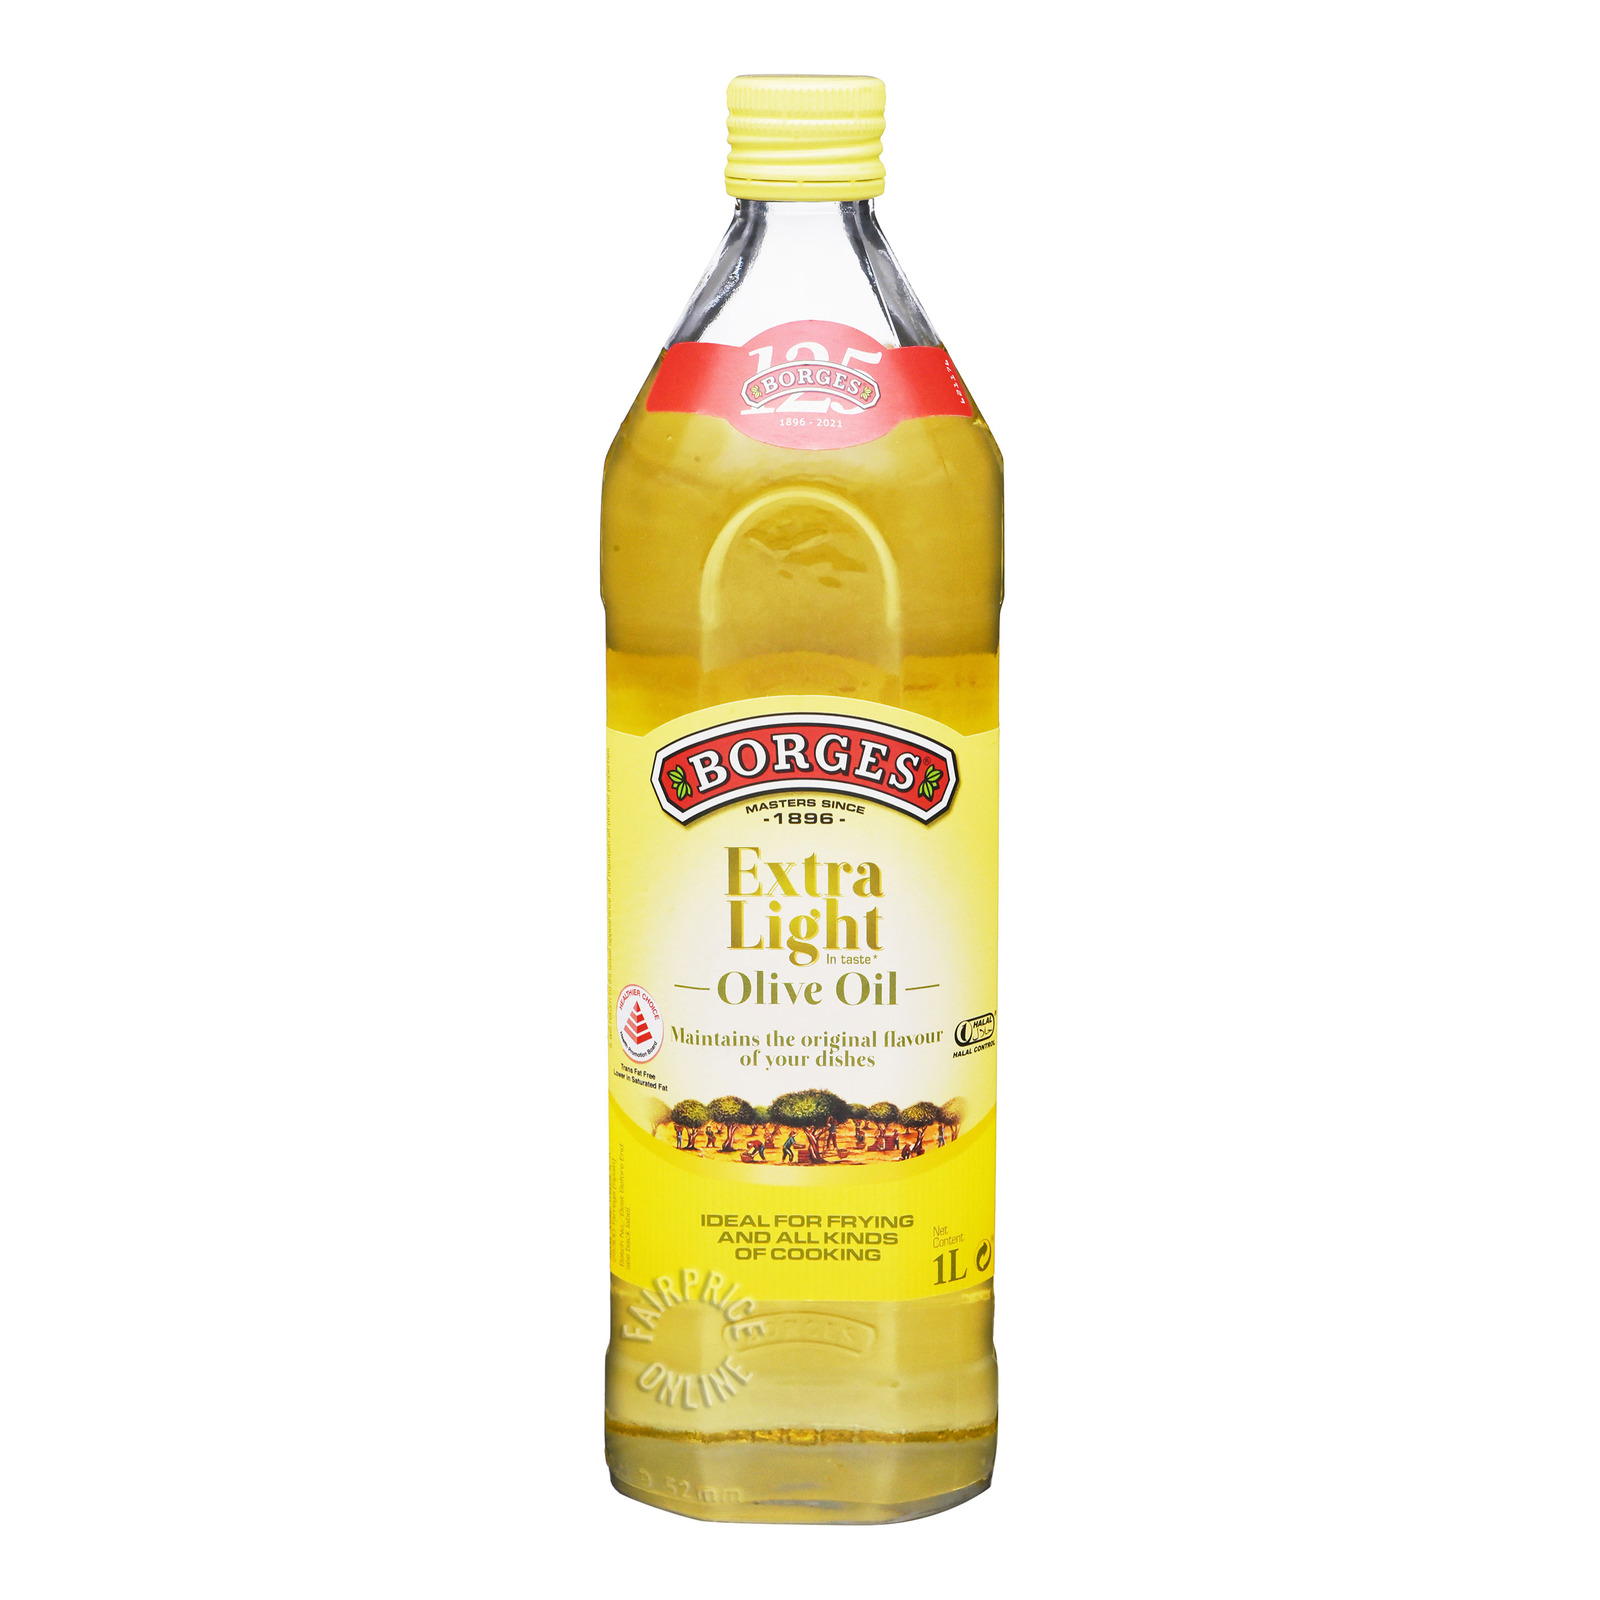 BORGES Extra Light Olive Oil 1L